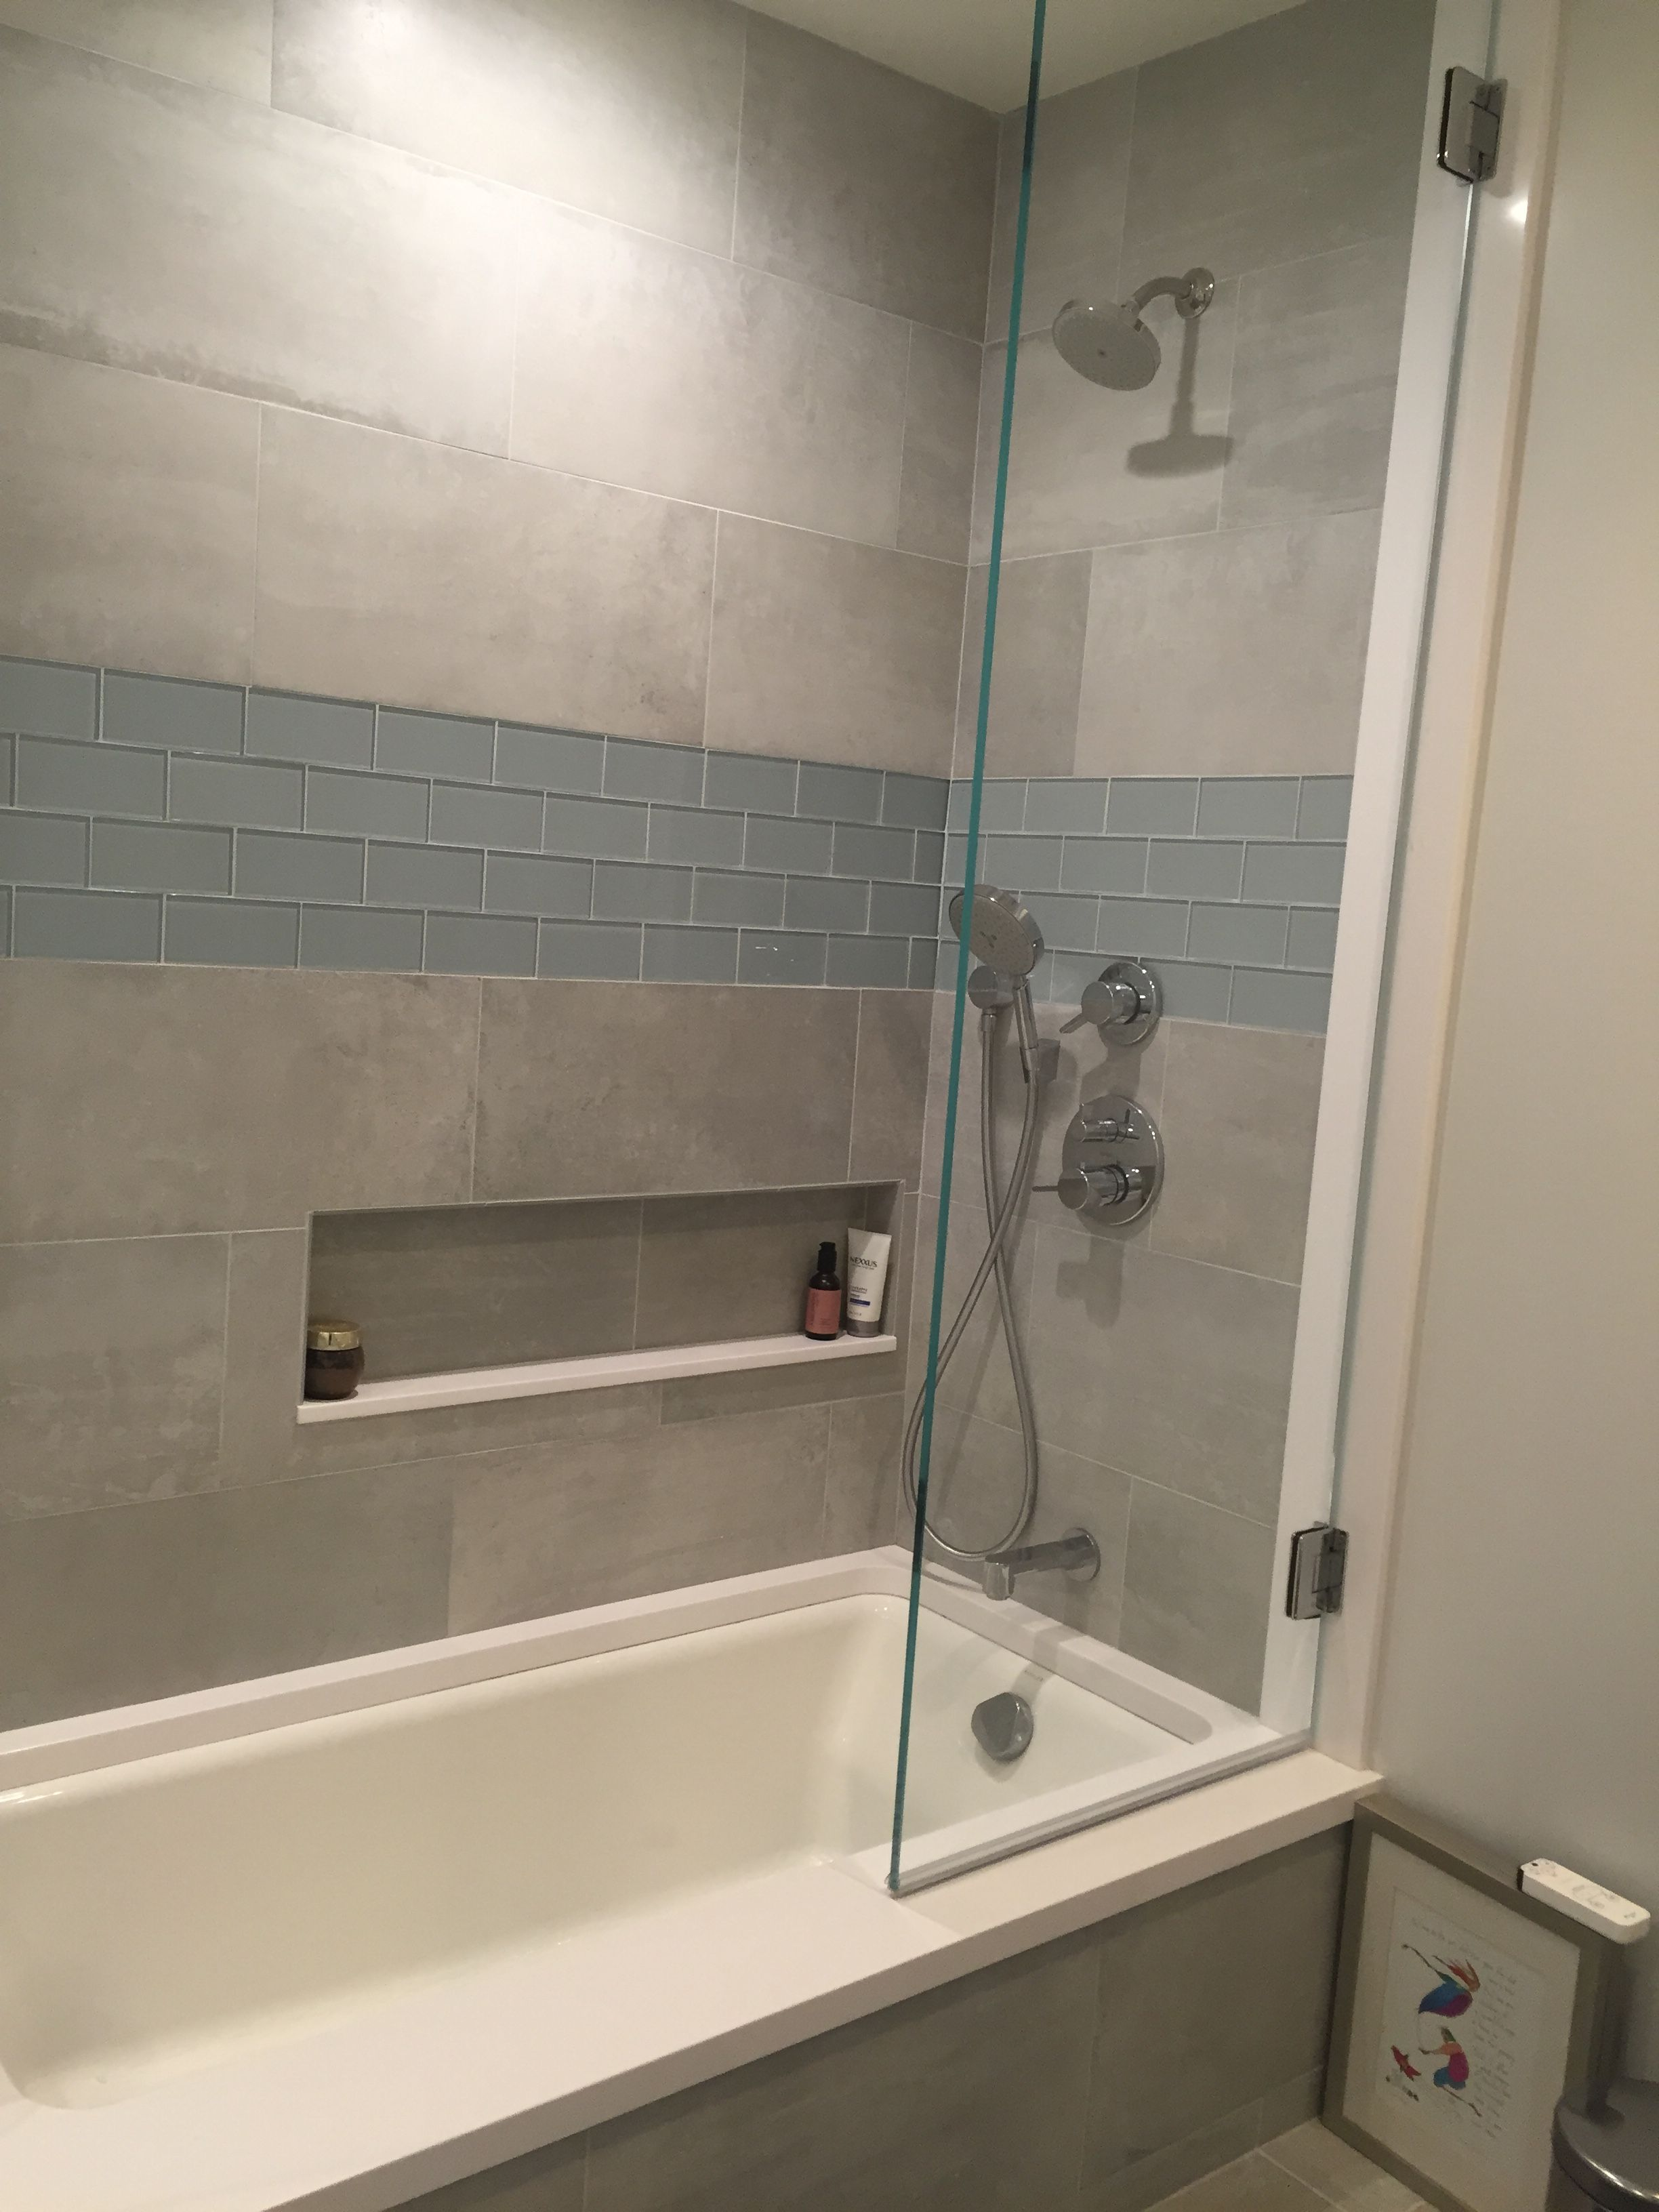 Large Format Tile And Glass Subway Tile In This Awesome Shower